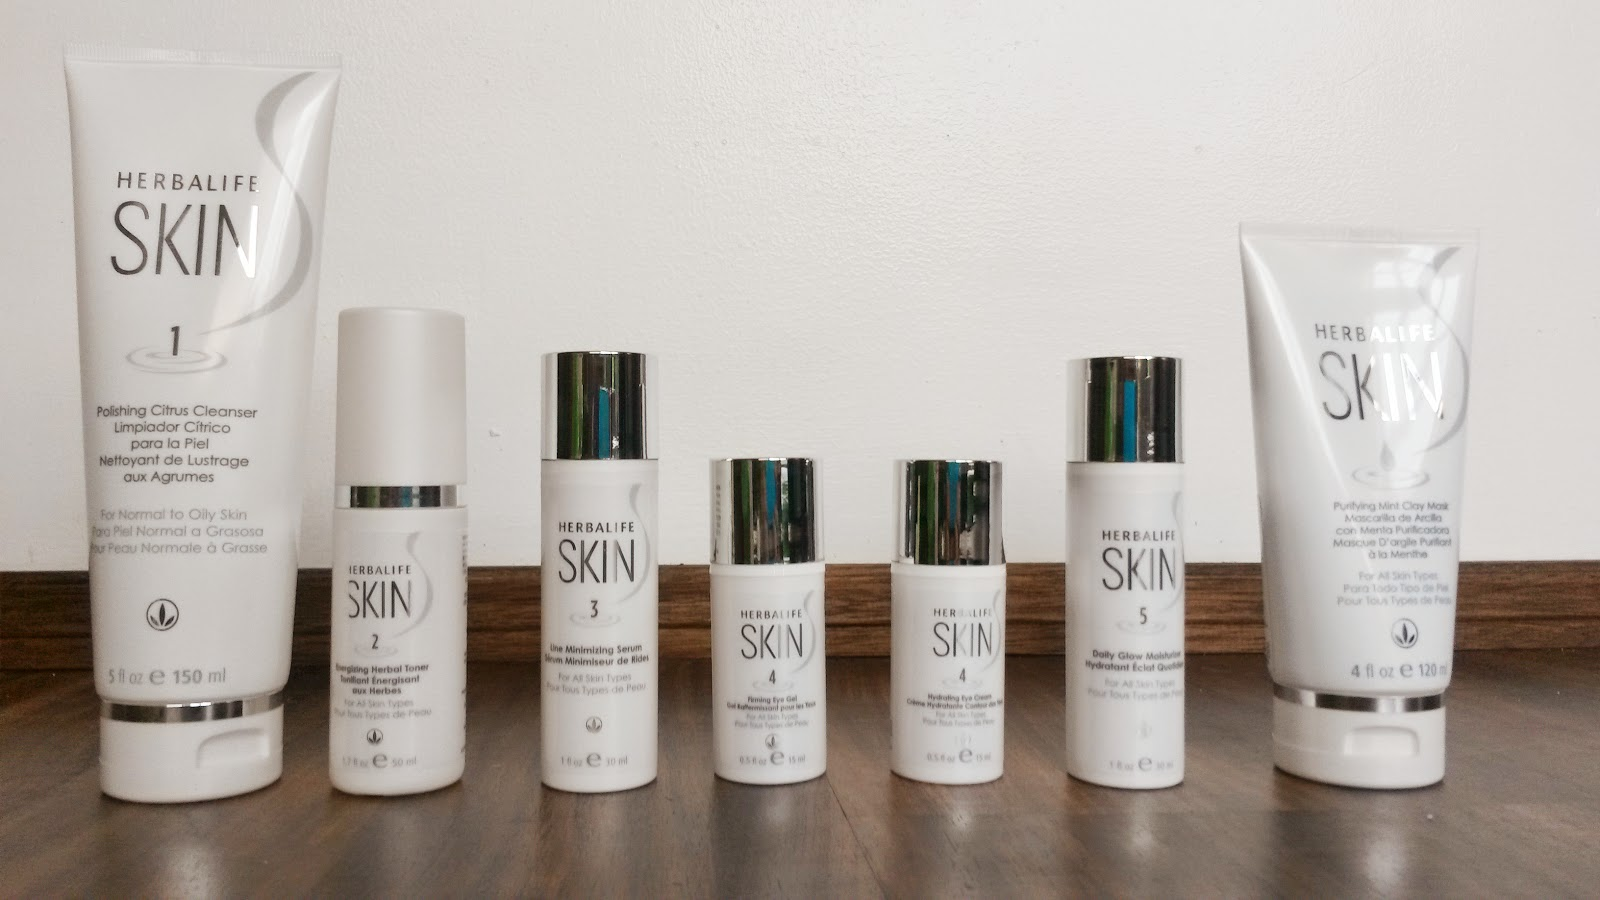 Care herbal life product skin - Herbalife Skin Review Top Beauty And Lifestyle Blog On Makeup Skincare Fitness Tech Food Travel